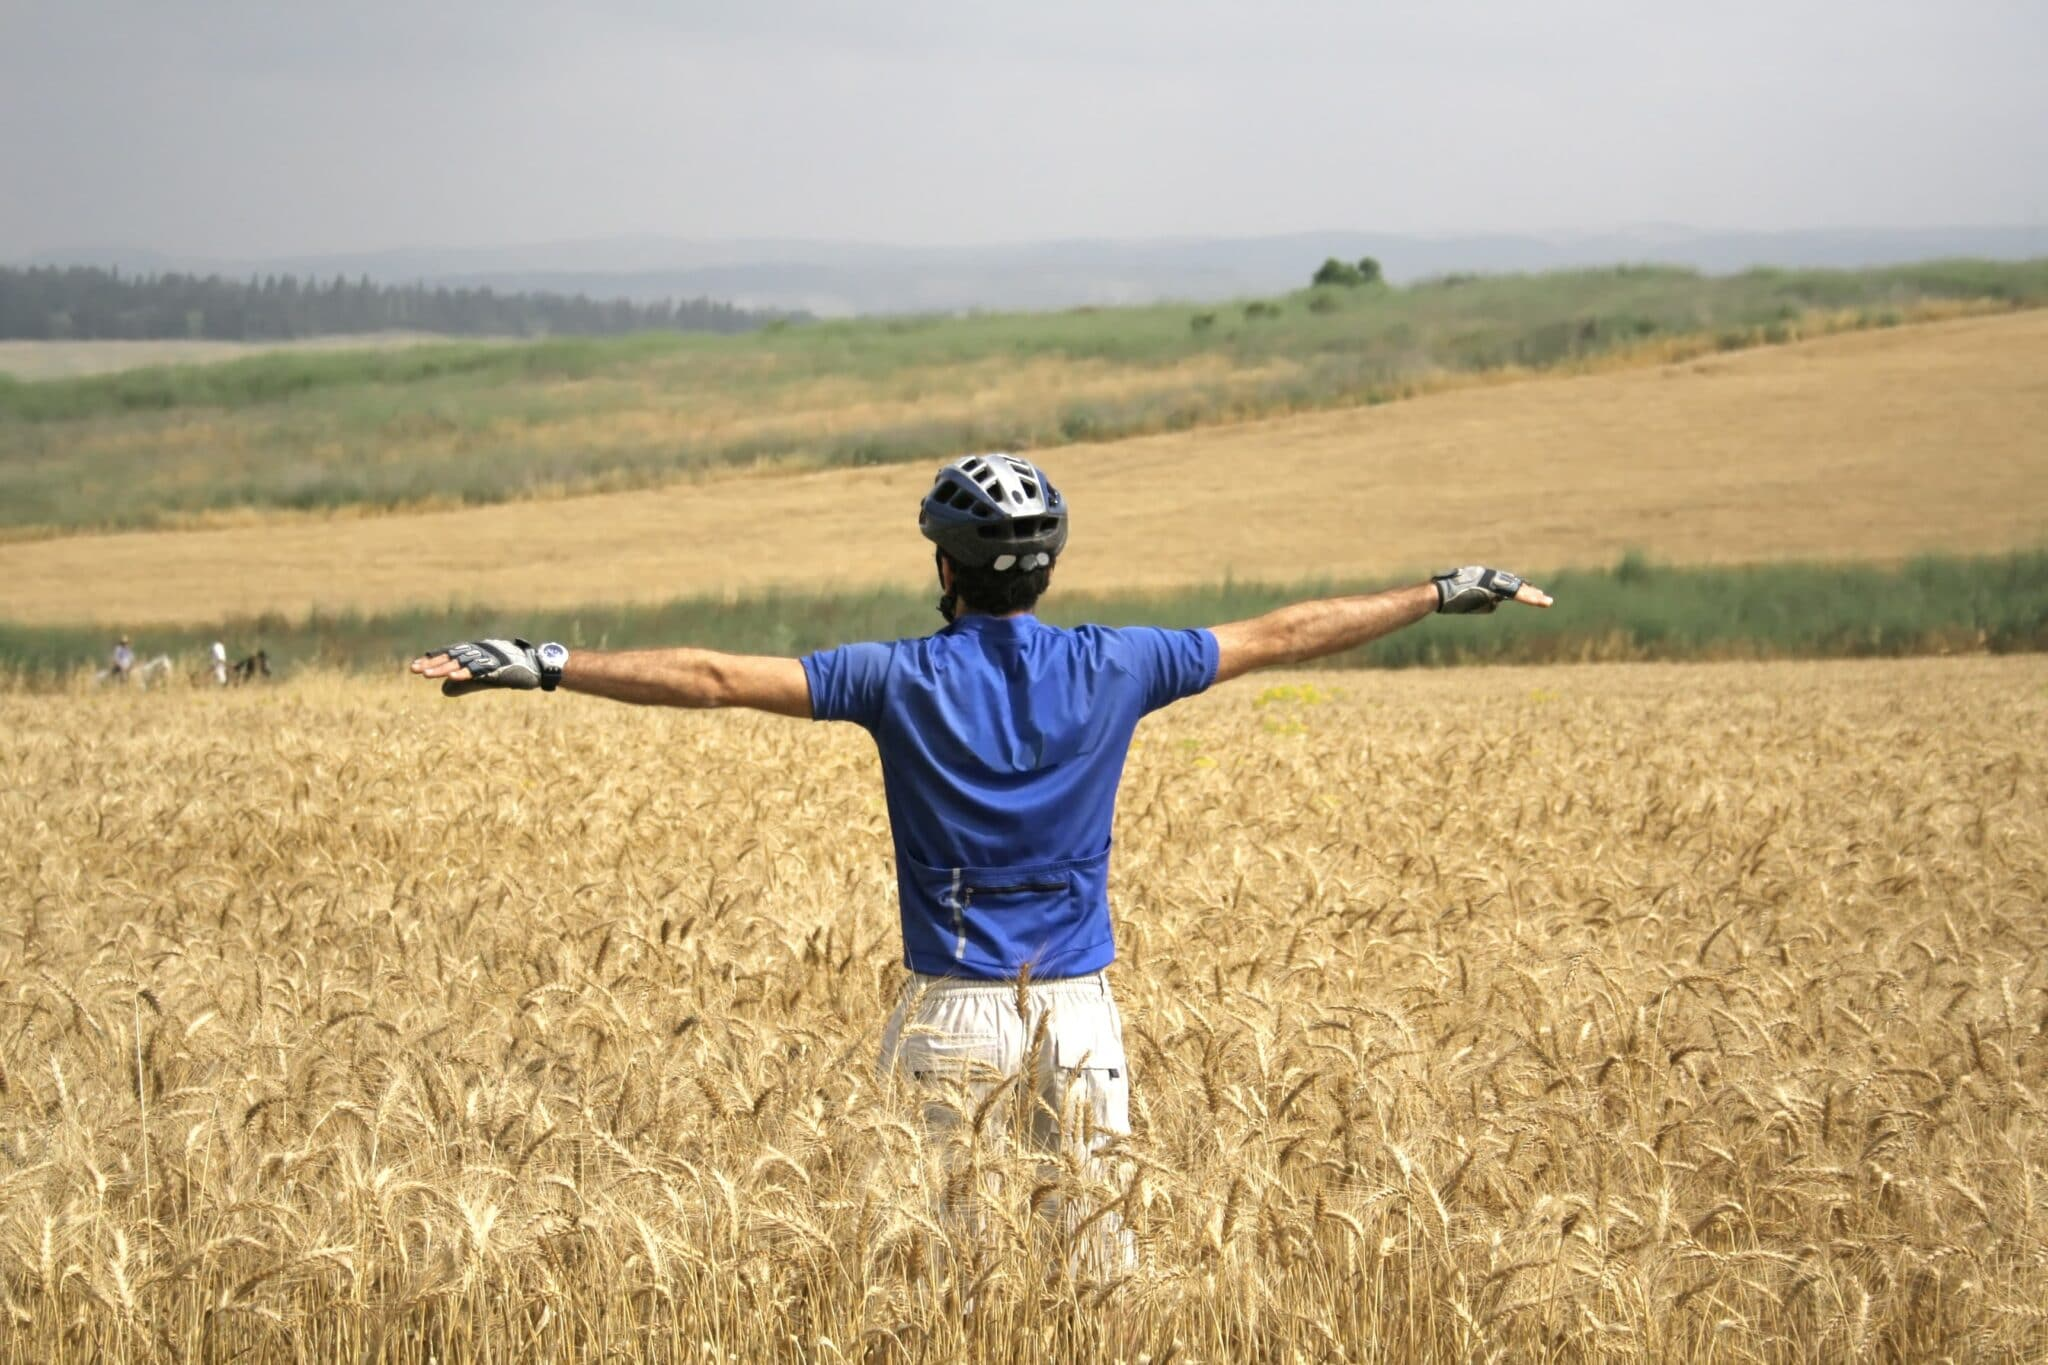 cyclist in field of hay